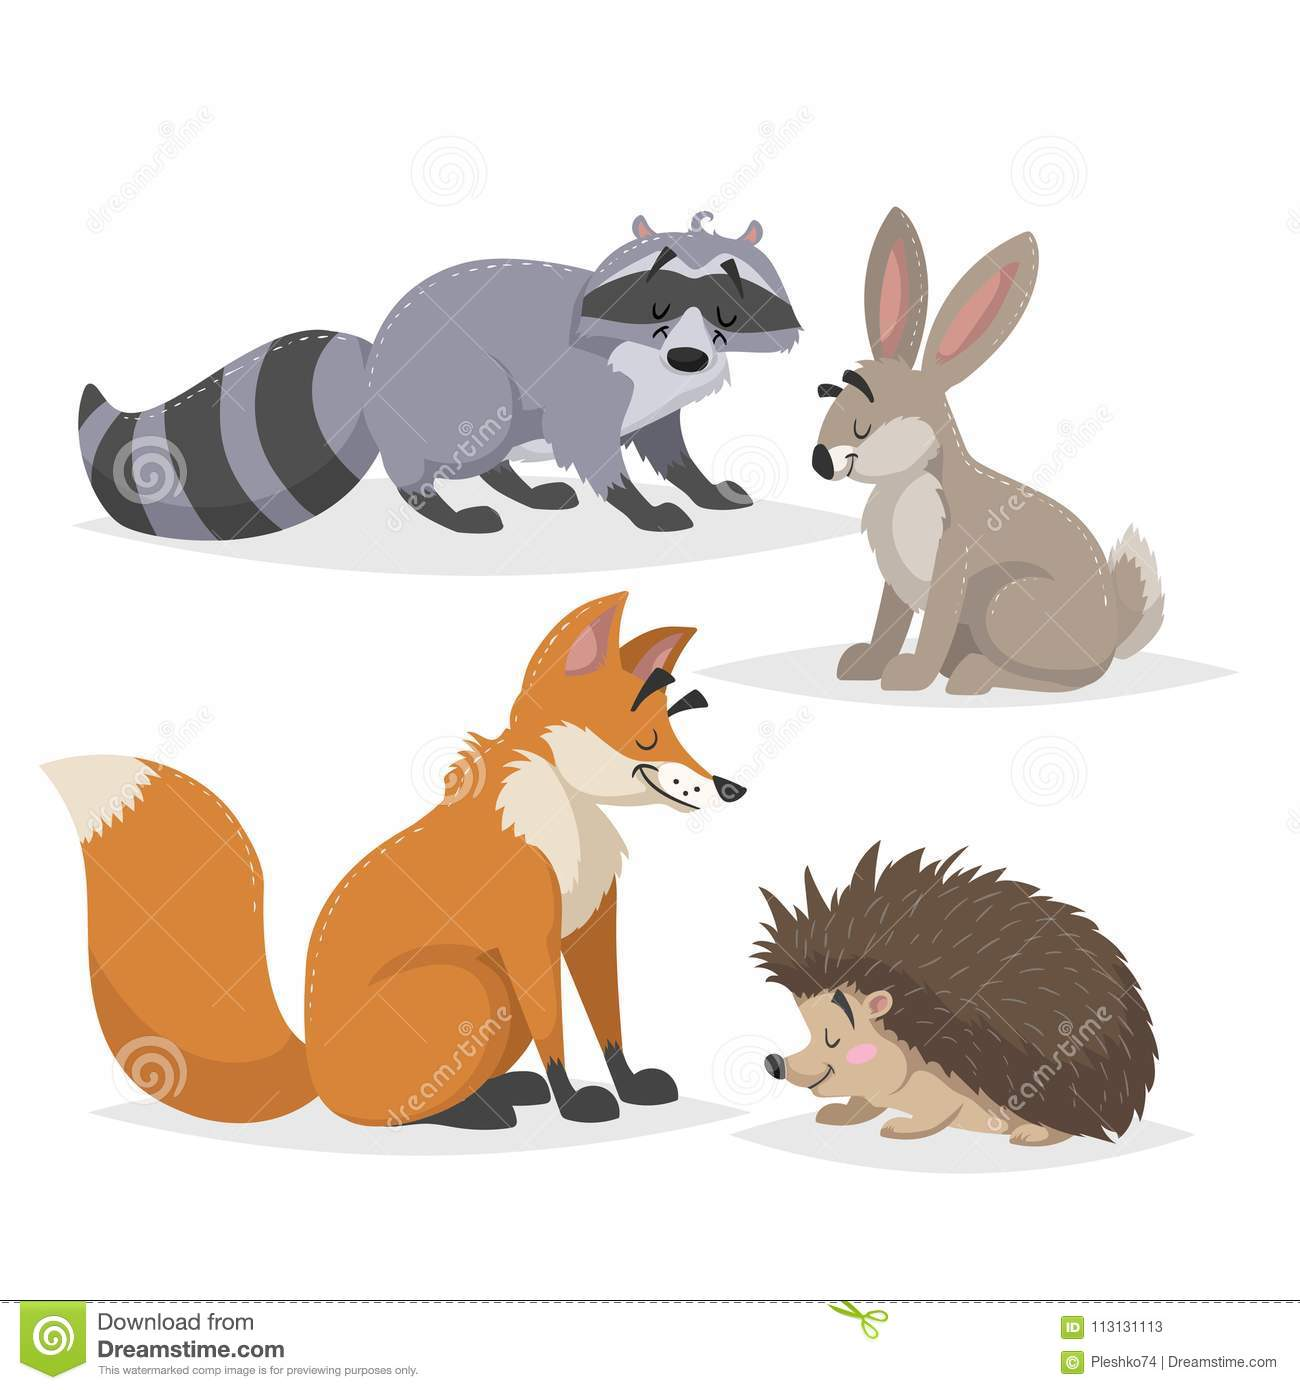 Forest animals set. Raccoon, hare, hedgehog and red fox. Happy smiling and cheerful characters. Vector zoo illustrations